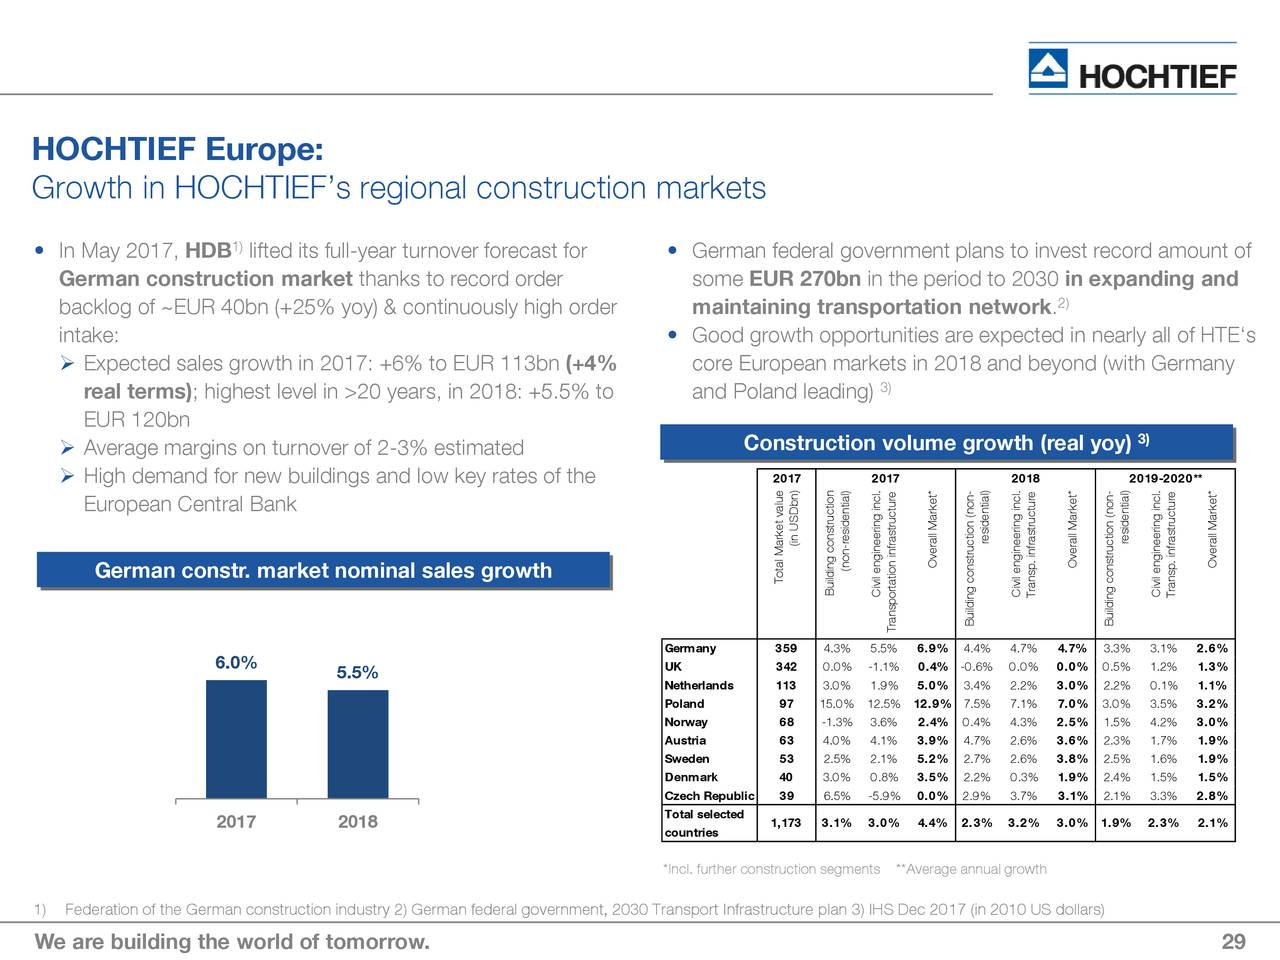 non residential construction market in central europe The european construction market forecast looks bright  new non-residential,  -5,2, 0,6, 2,7, 2,1, 2,3, 3,1, 4,1, 4,7  the market forecast for central and eastern  europe looks bright, as these nations are experiencing.